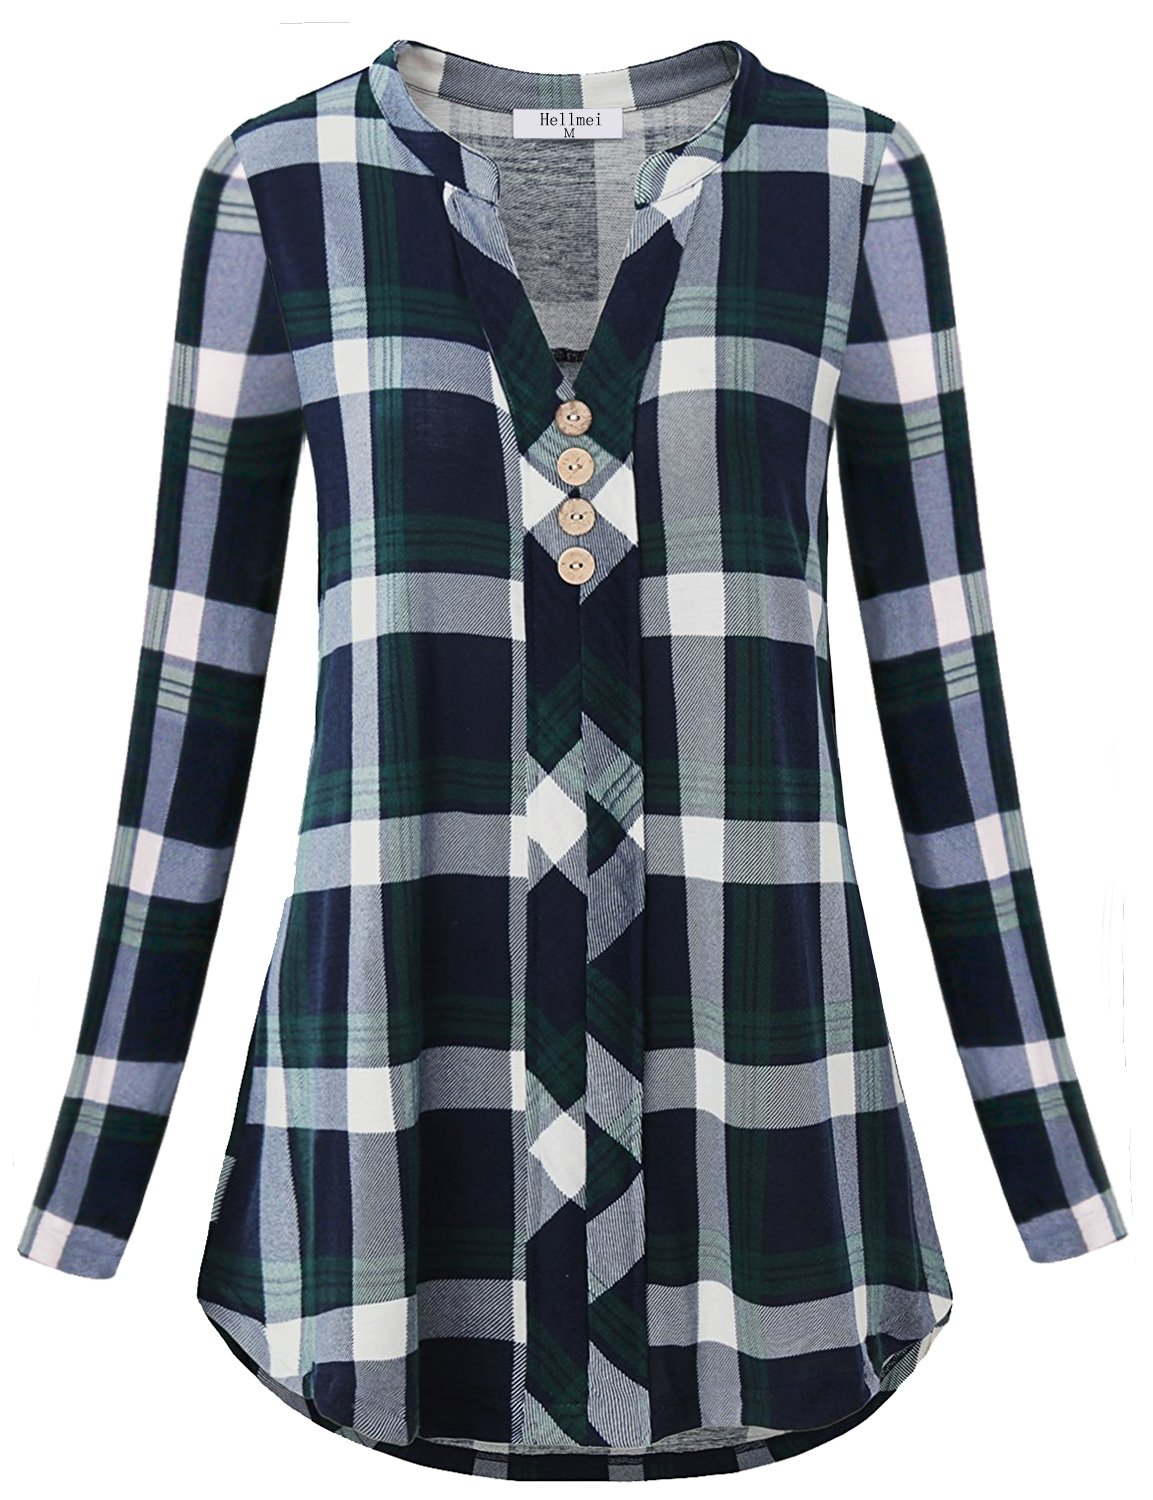 5de3a0953865a Ladies Green Checked Shirts - Cotswold Hire